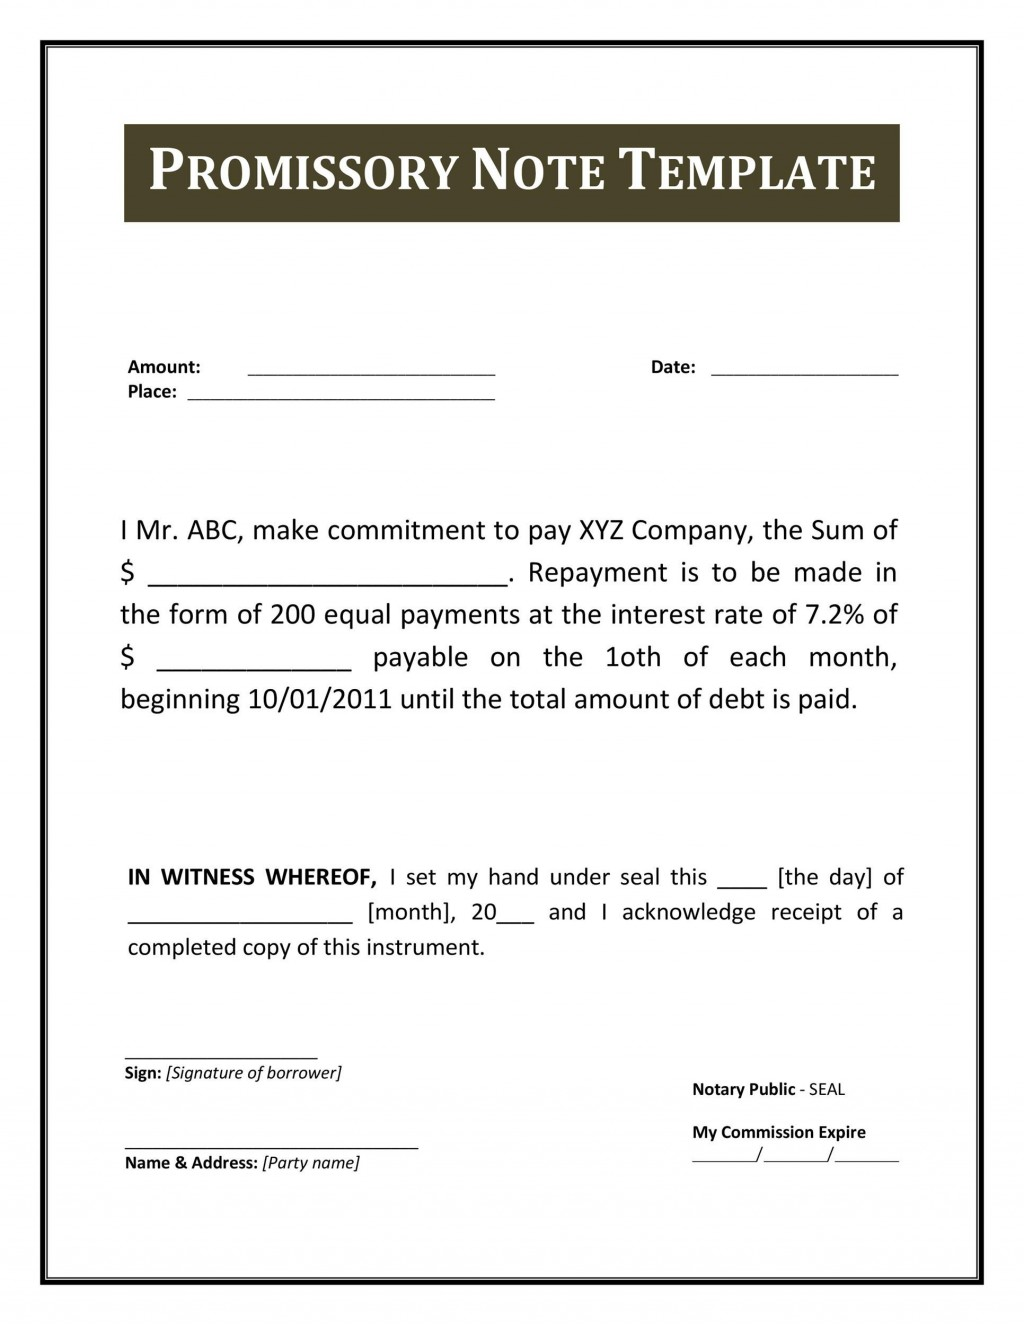 003 Incredible Promissory Note Word Template Design  2007 Document Uk IndiaLarge